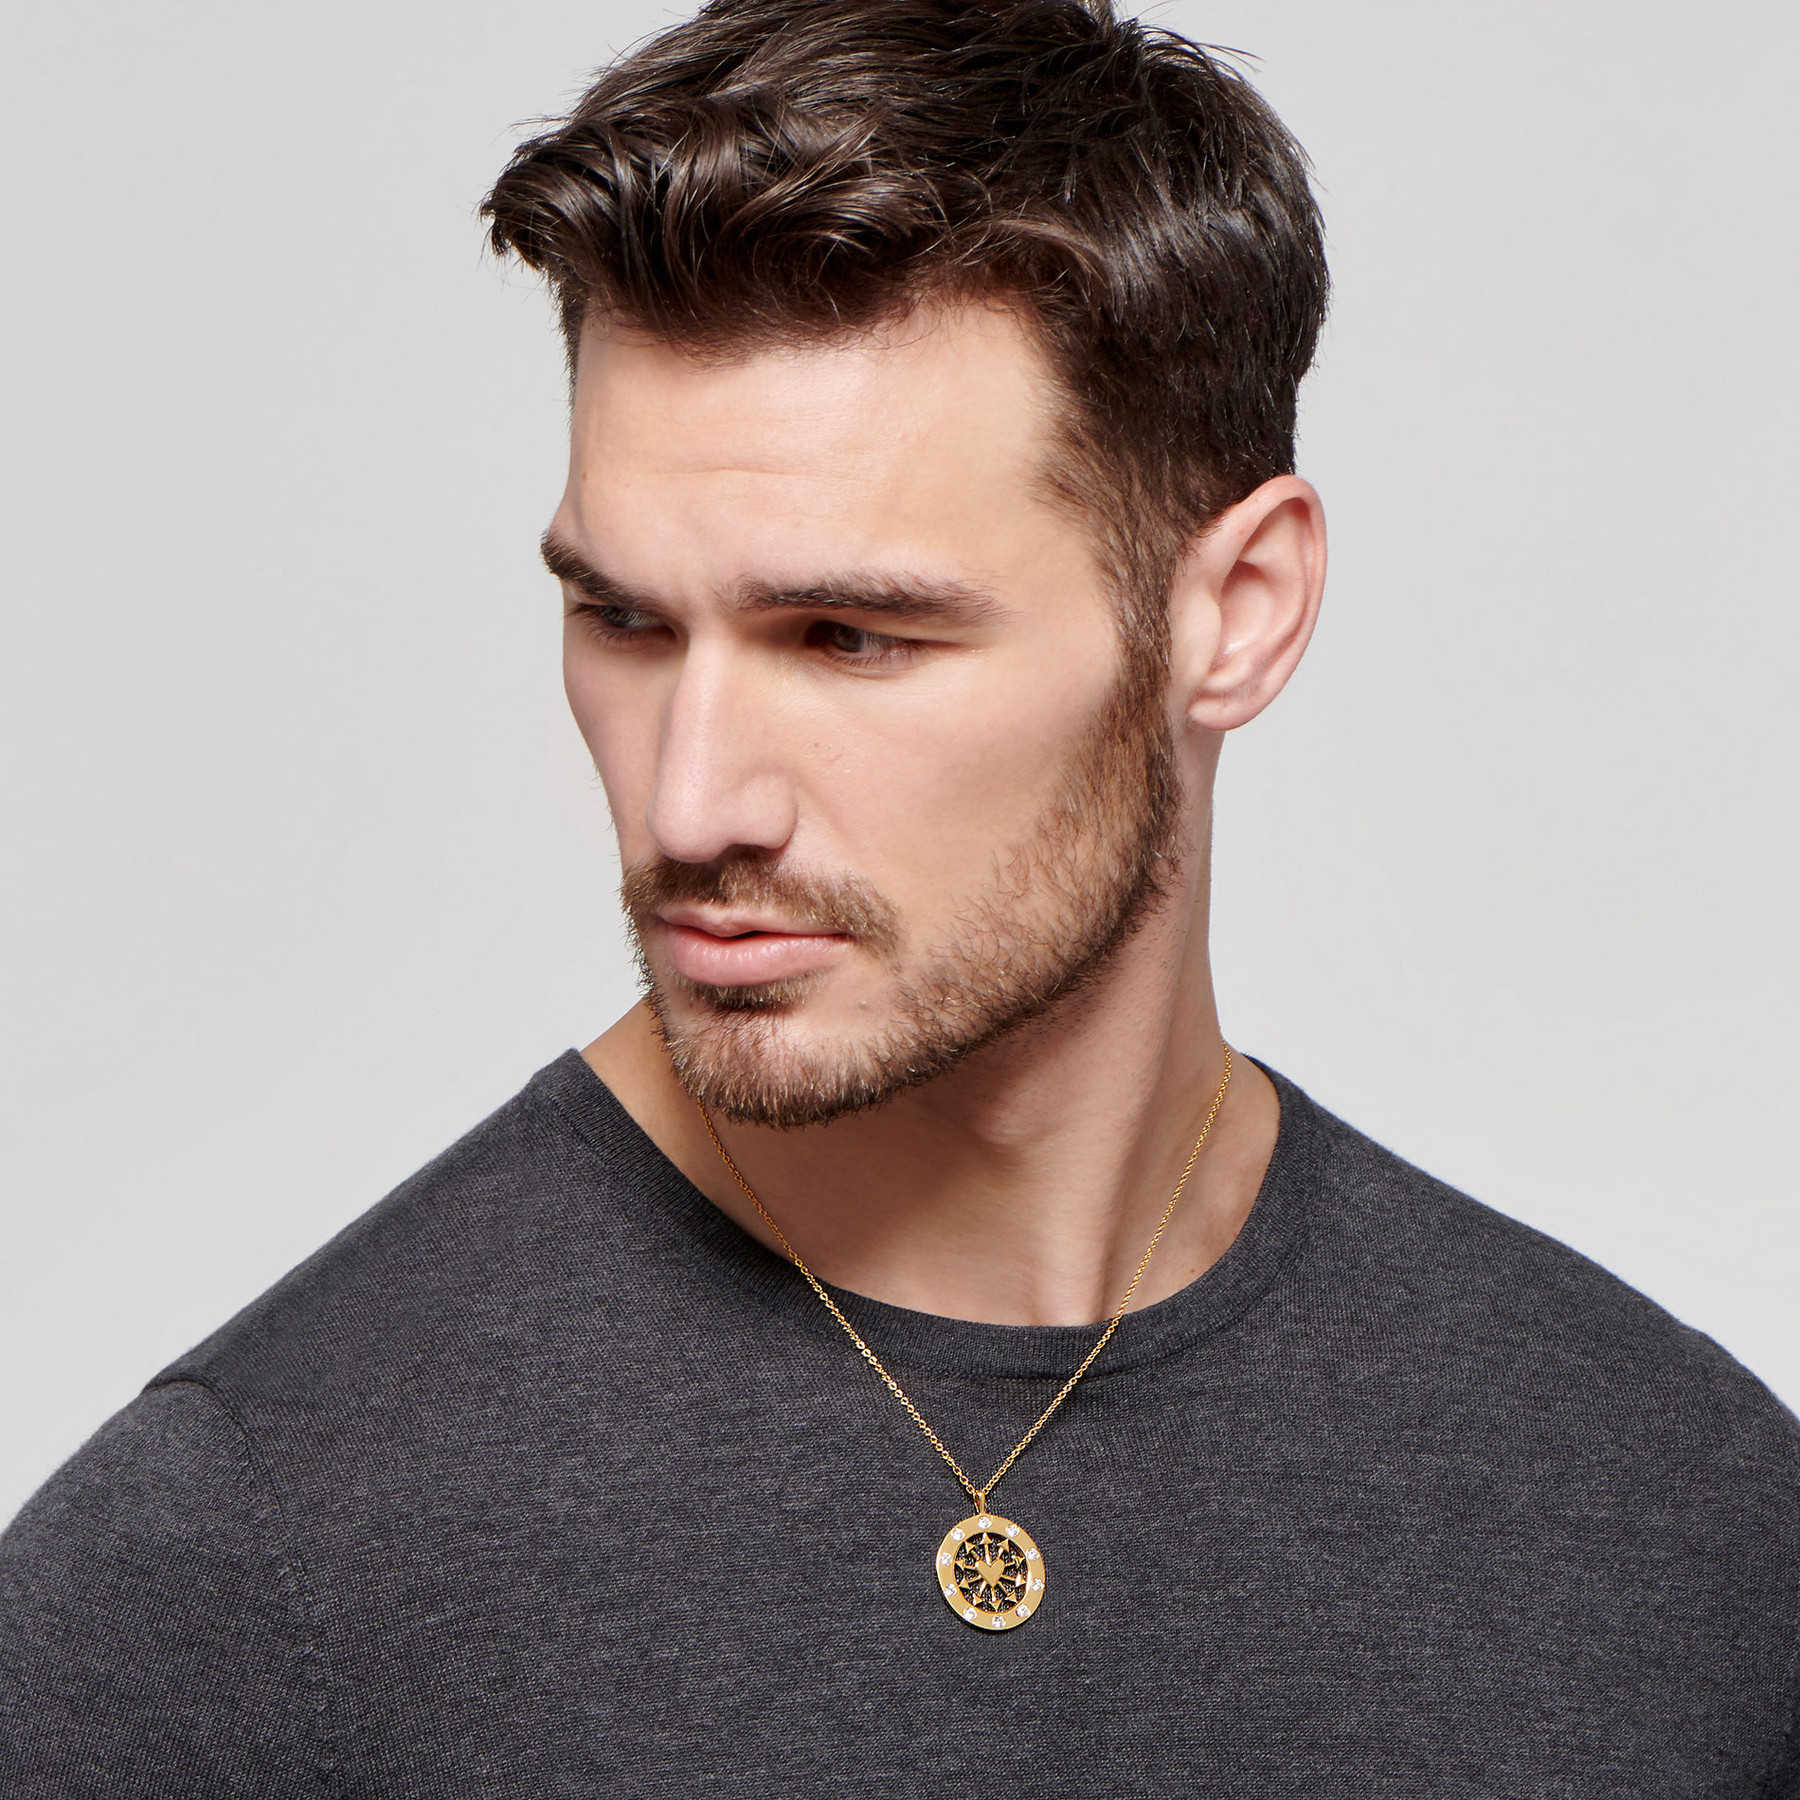 sculpted male model wearing medallion necklace made of 22 karat polished gold and studded with diamonds